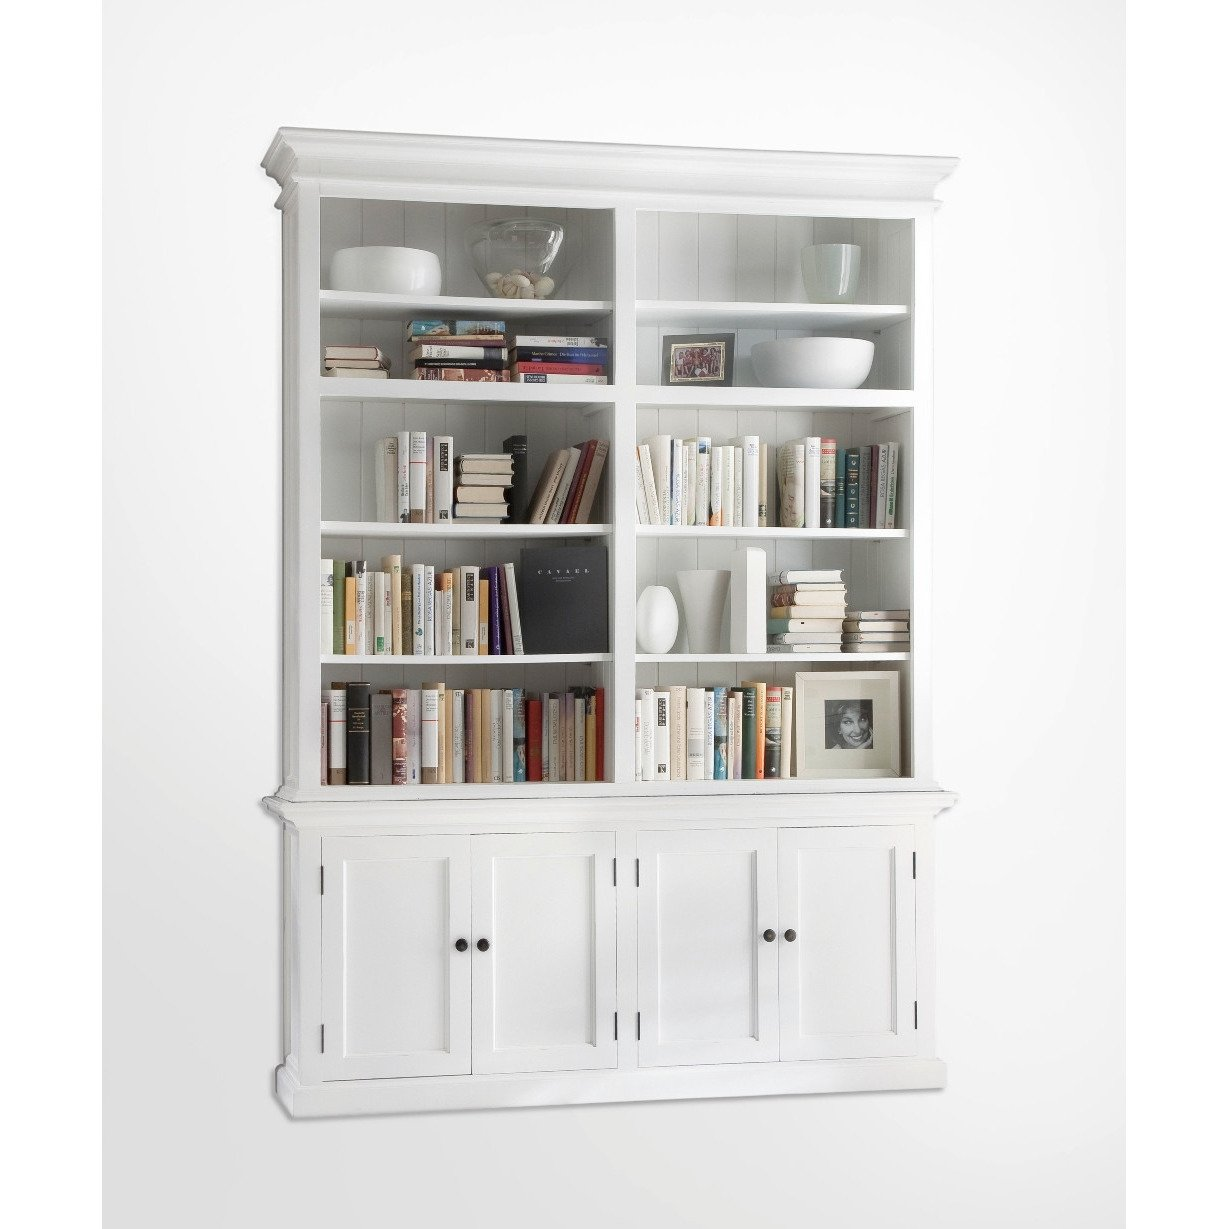 NovaSolo Double-Bay Hutch Unit